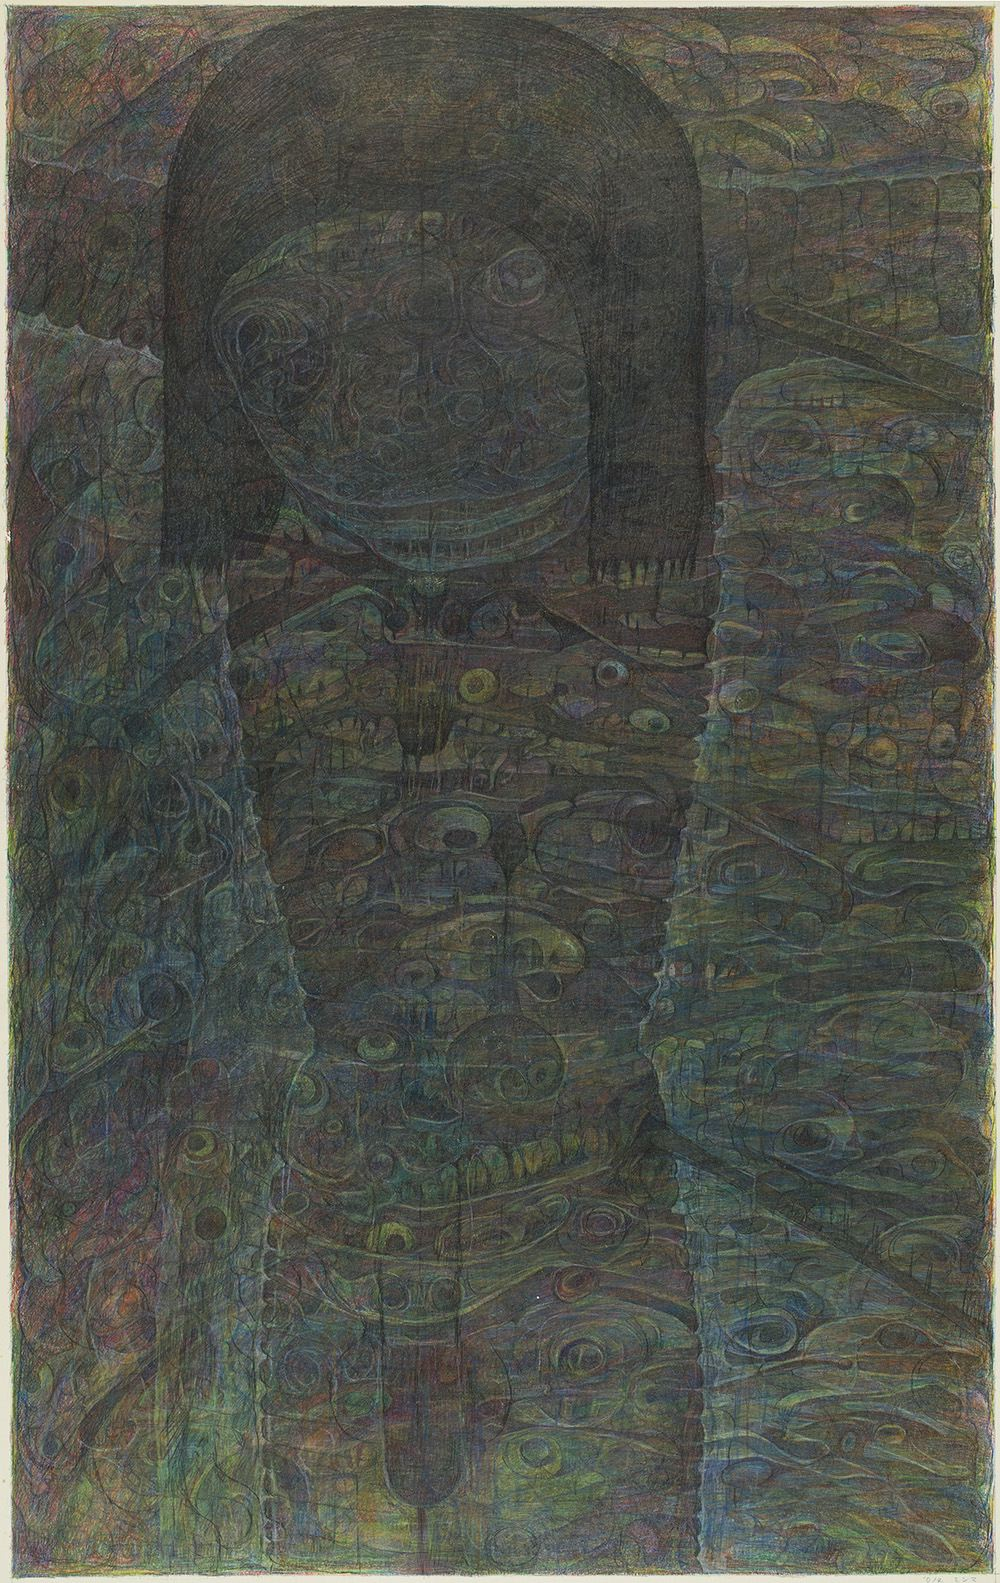 M'onma    Untitled  , 2000 Colored pencil on paper 29.72 x 18.7 inches 75.5 x 47.5 cm IMo 68